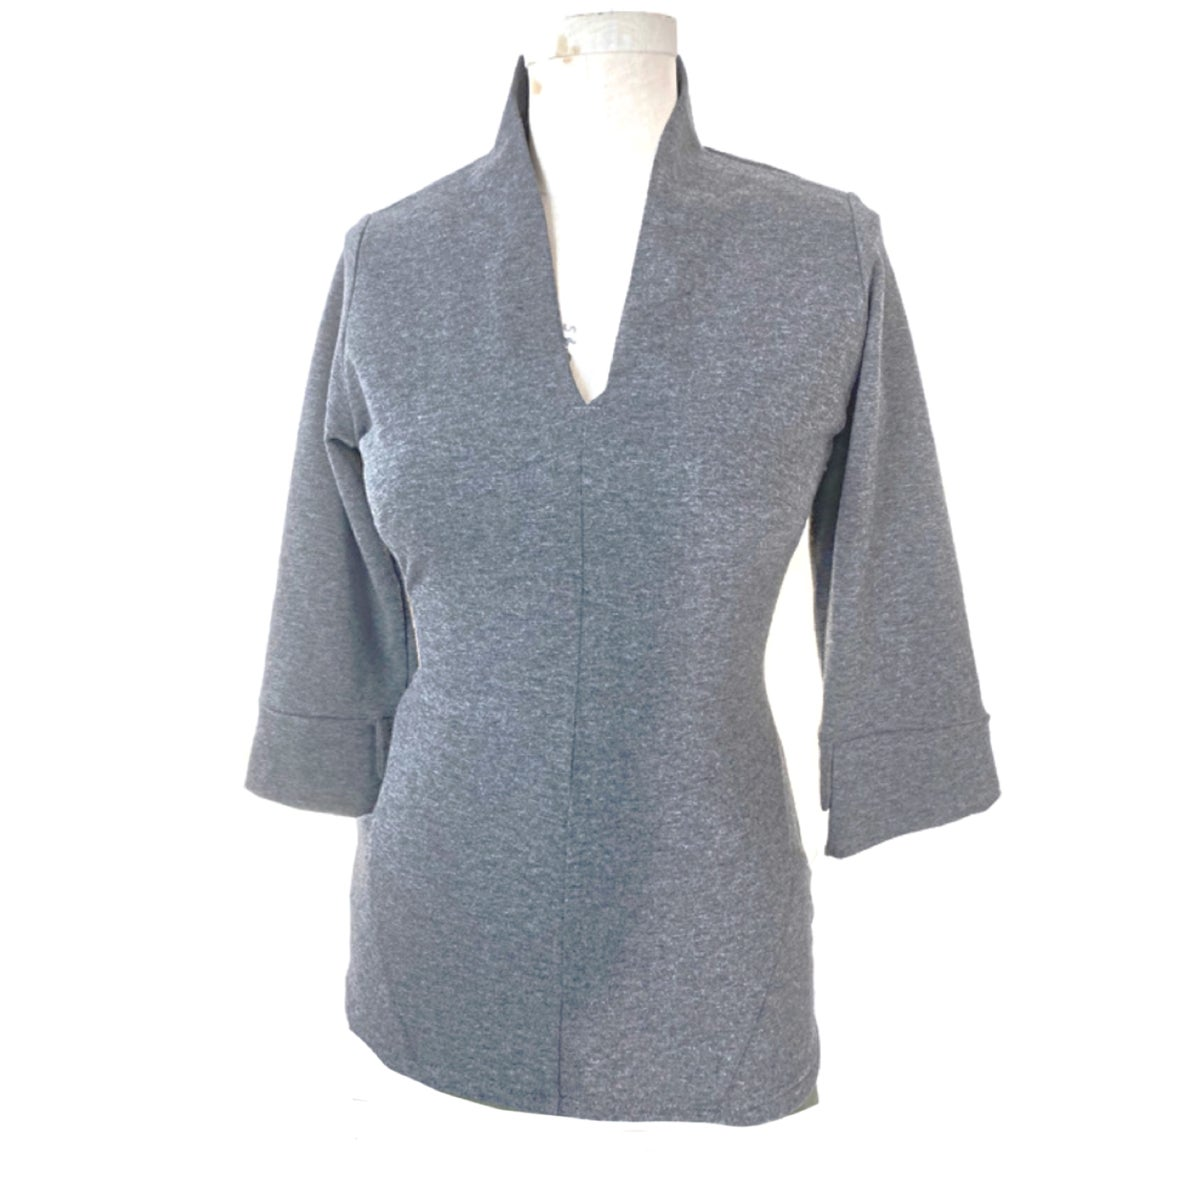 Image of Euclidean top in charcoal